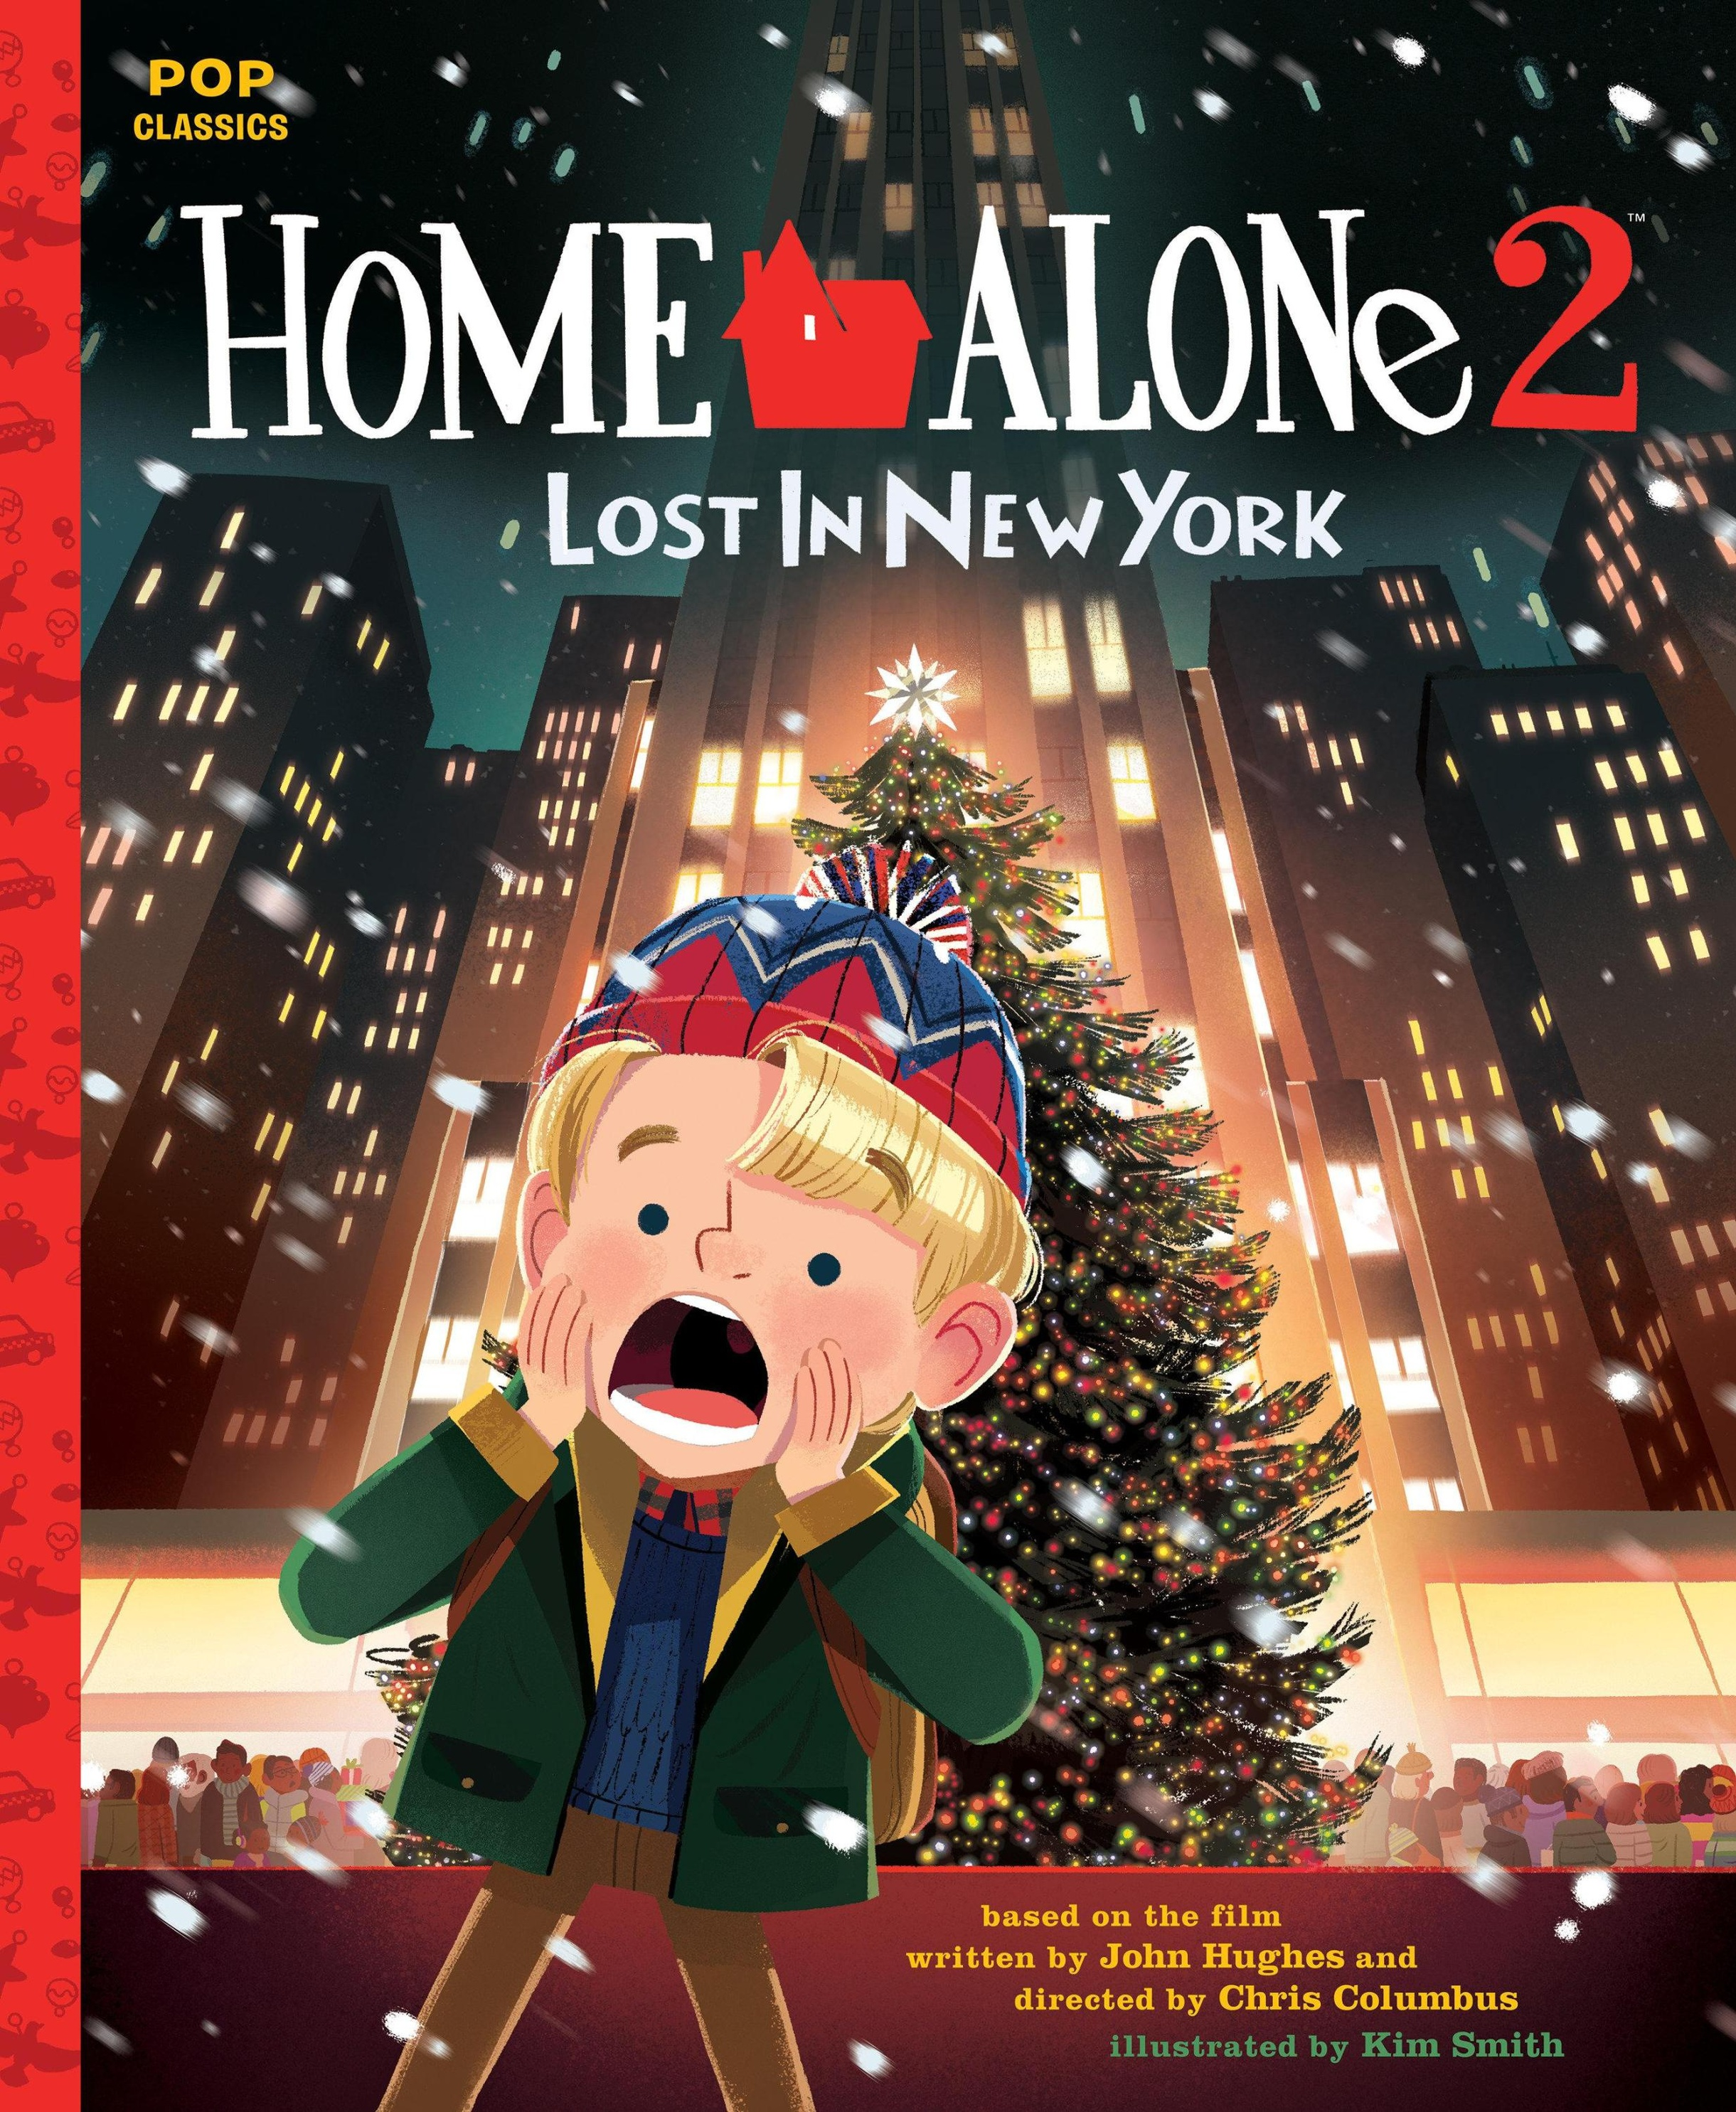 Home Alone 20 Lost in New York